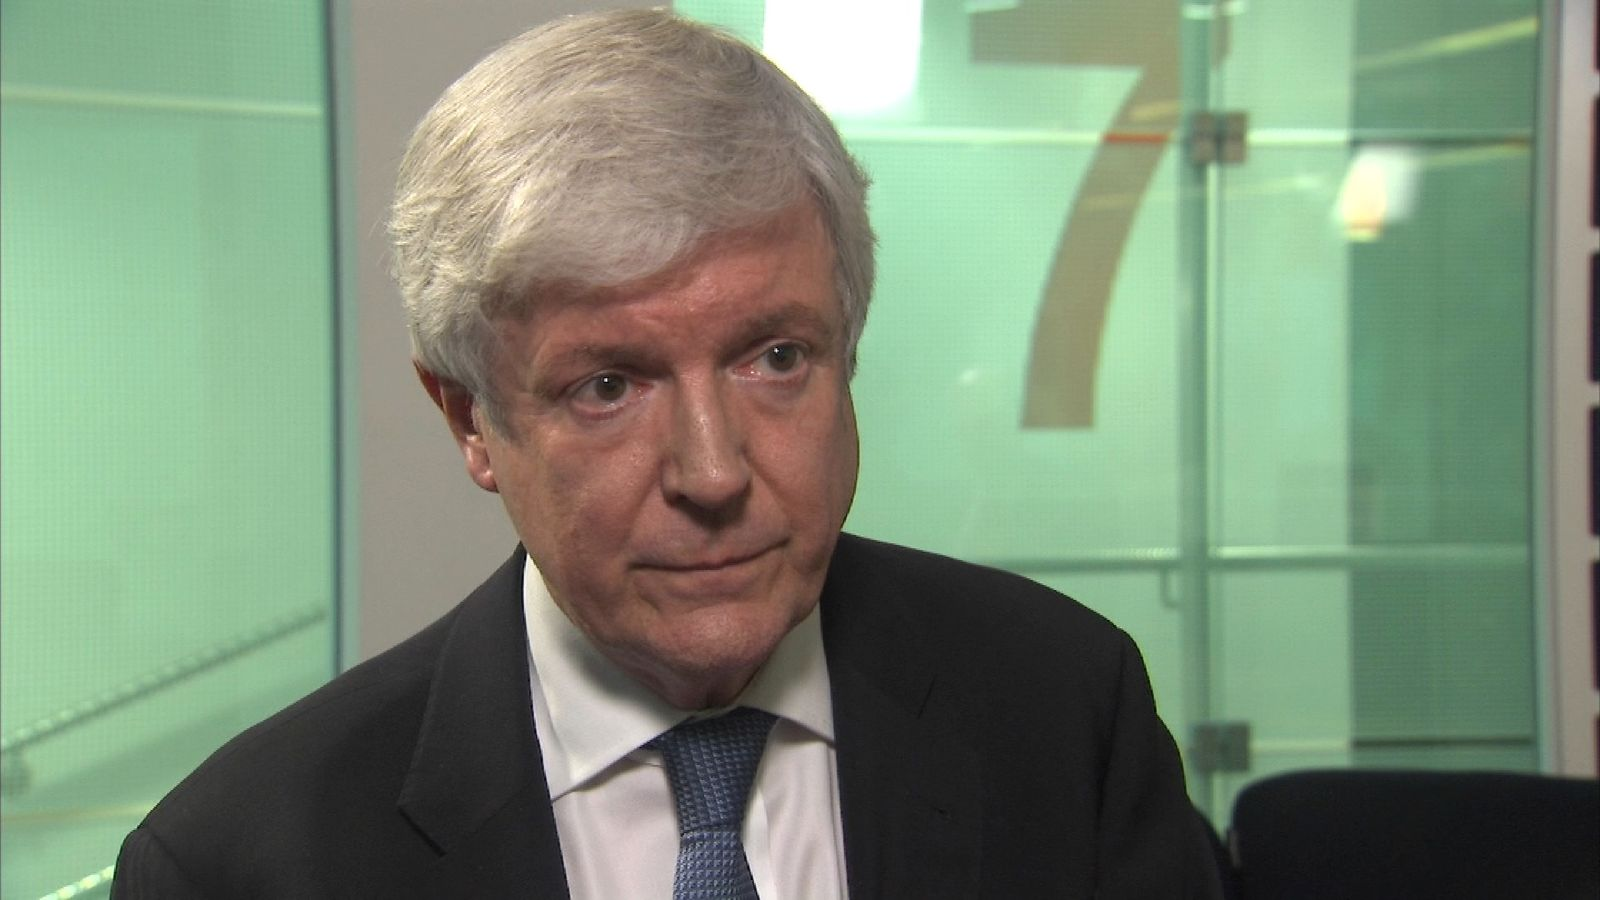 BBC Director-General discusses plans for gender pay gap